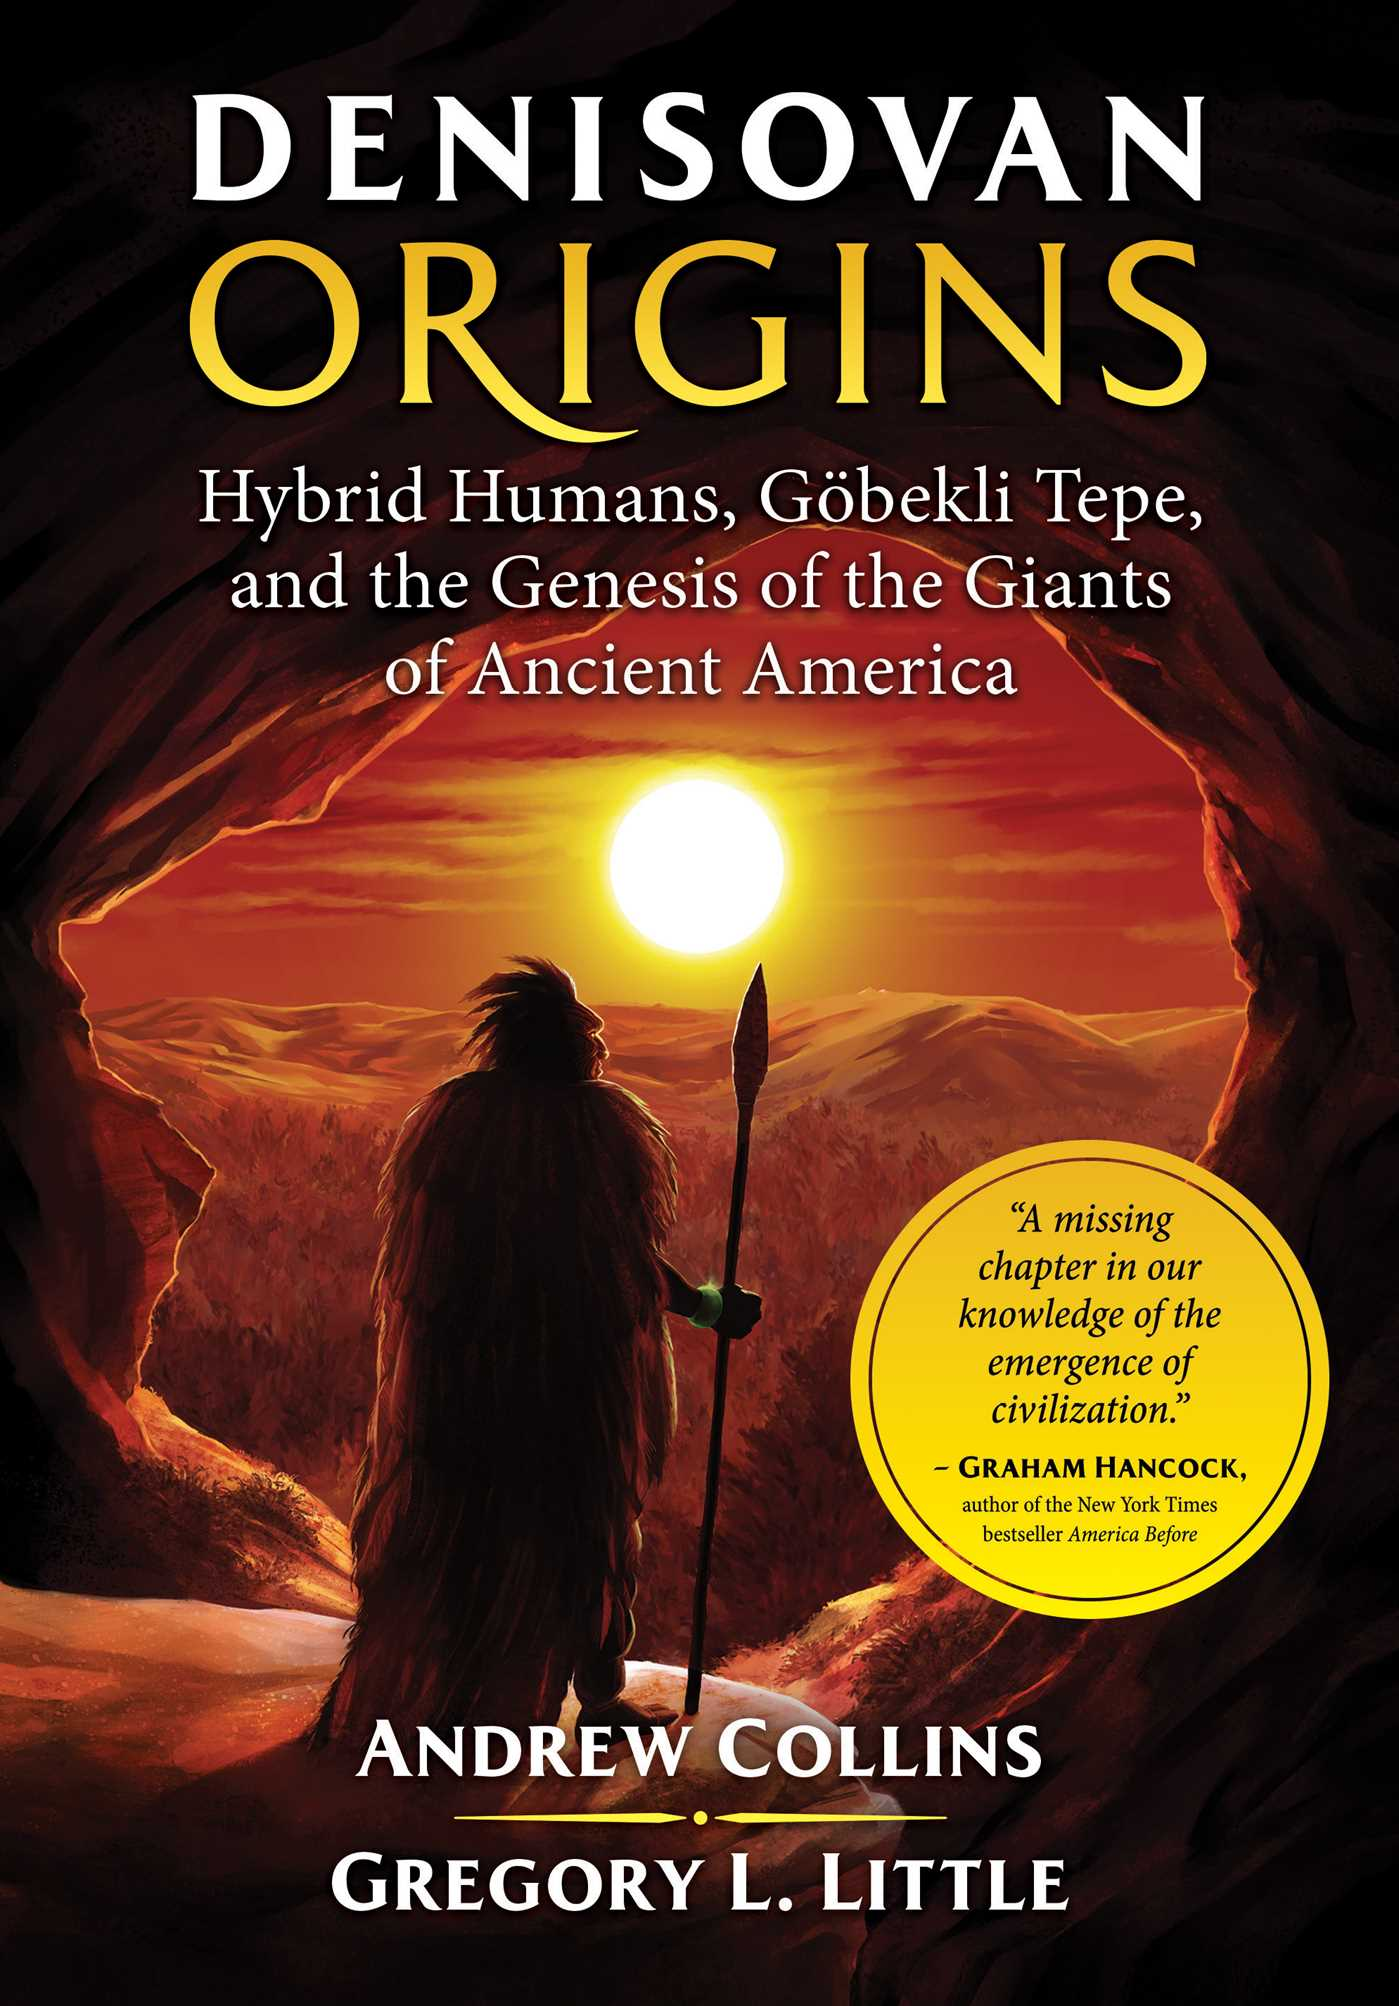 Book Cover Returns To Its Origins In >> Denisovan Origins Book By Andrew Collins Greg L Little